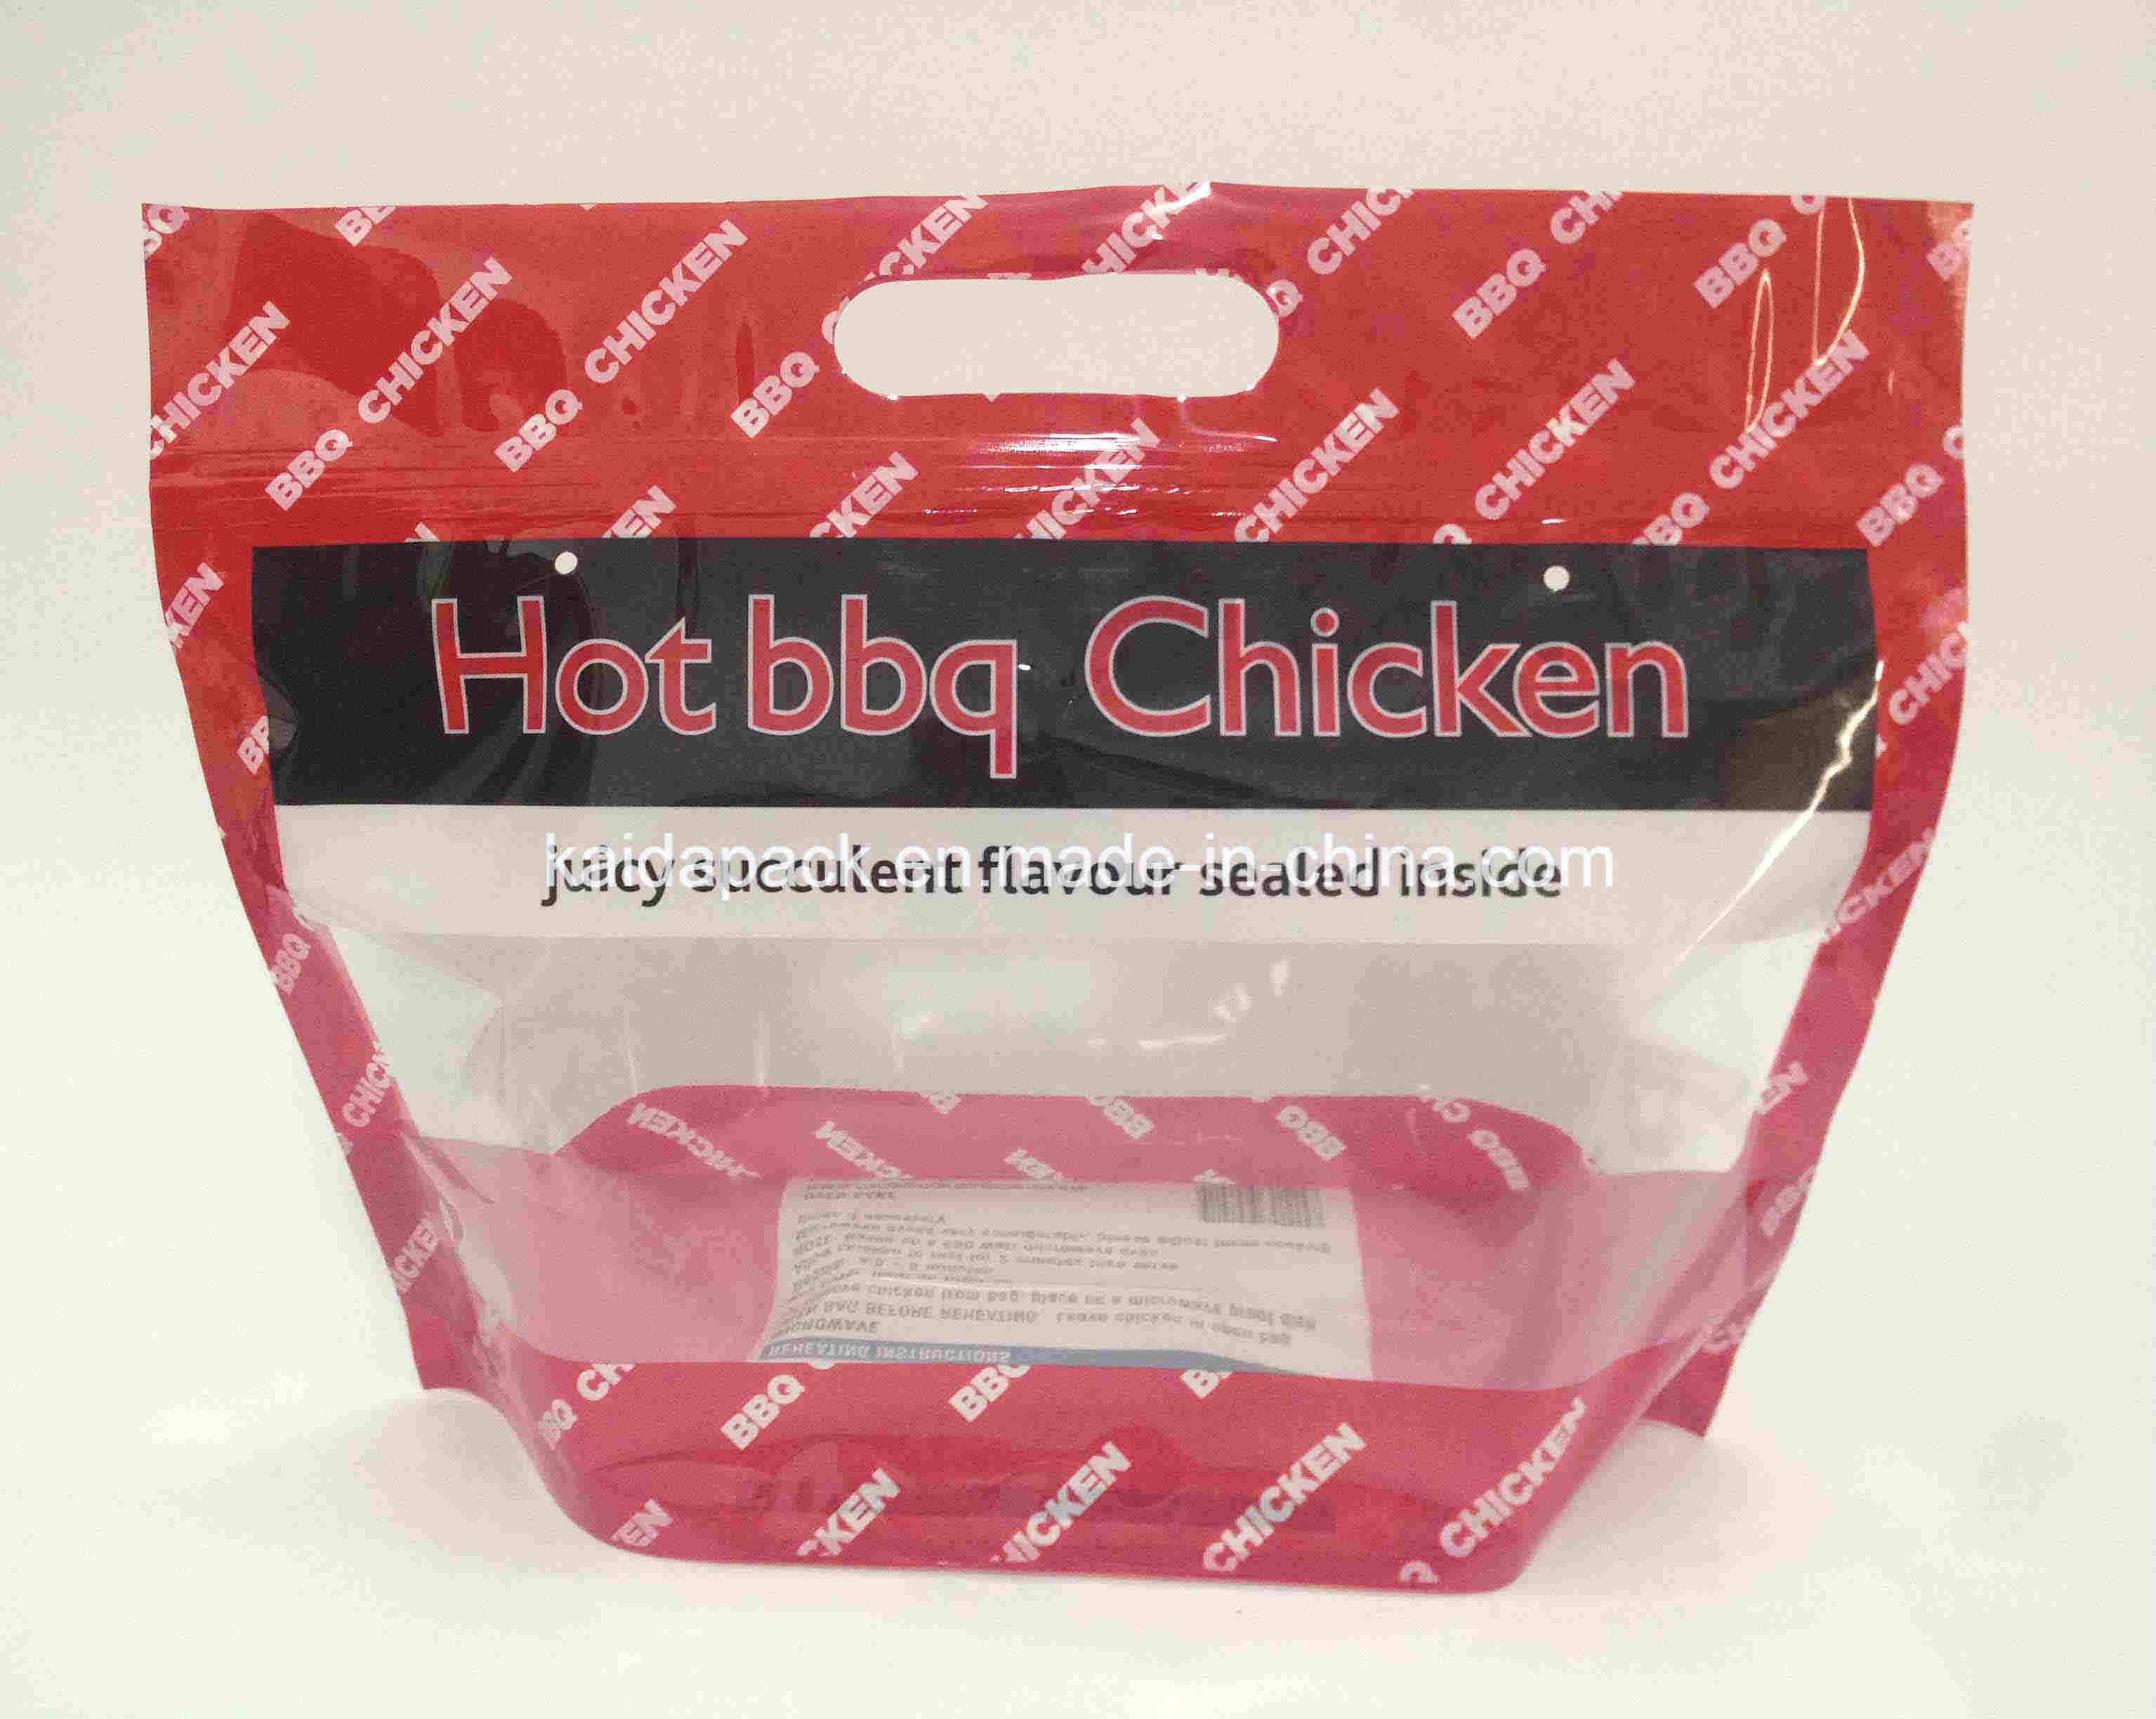 Microwave Hot BBQ Chicken Bag with Zipper